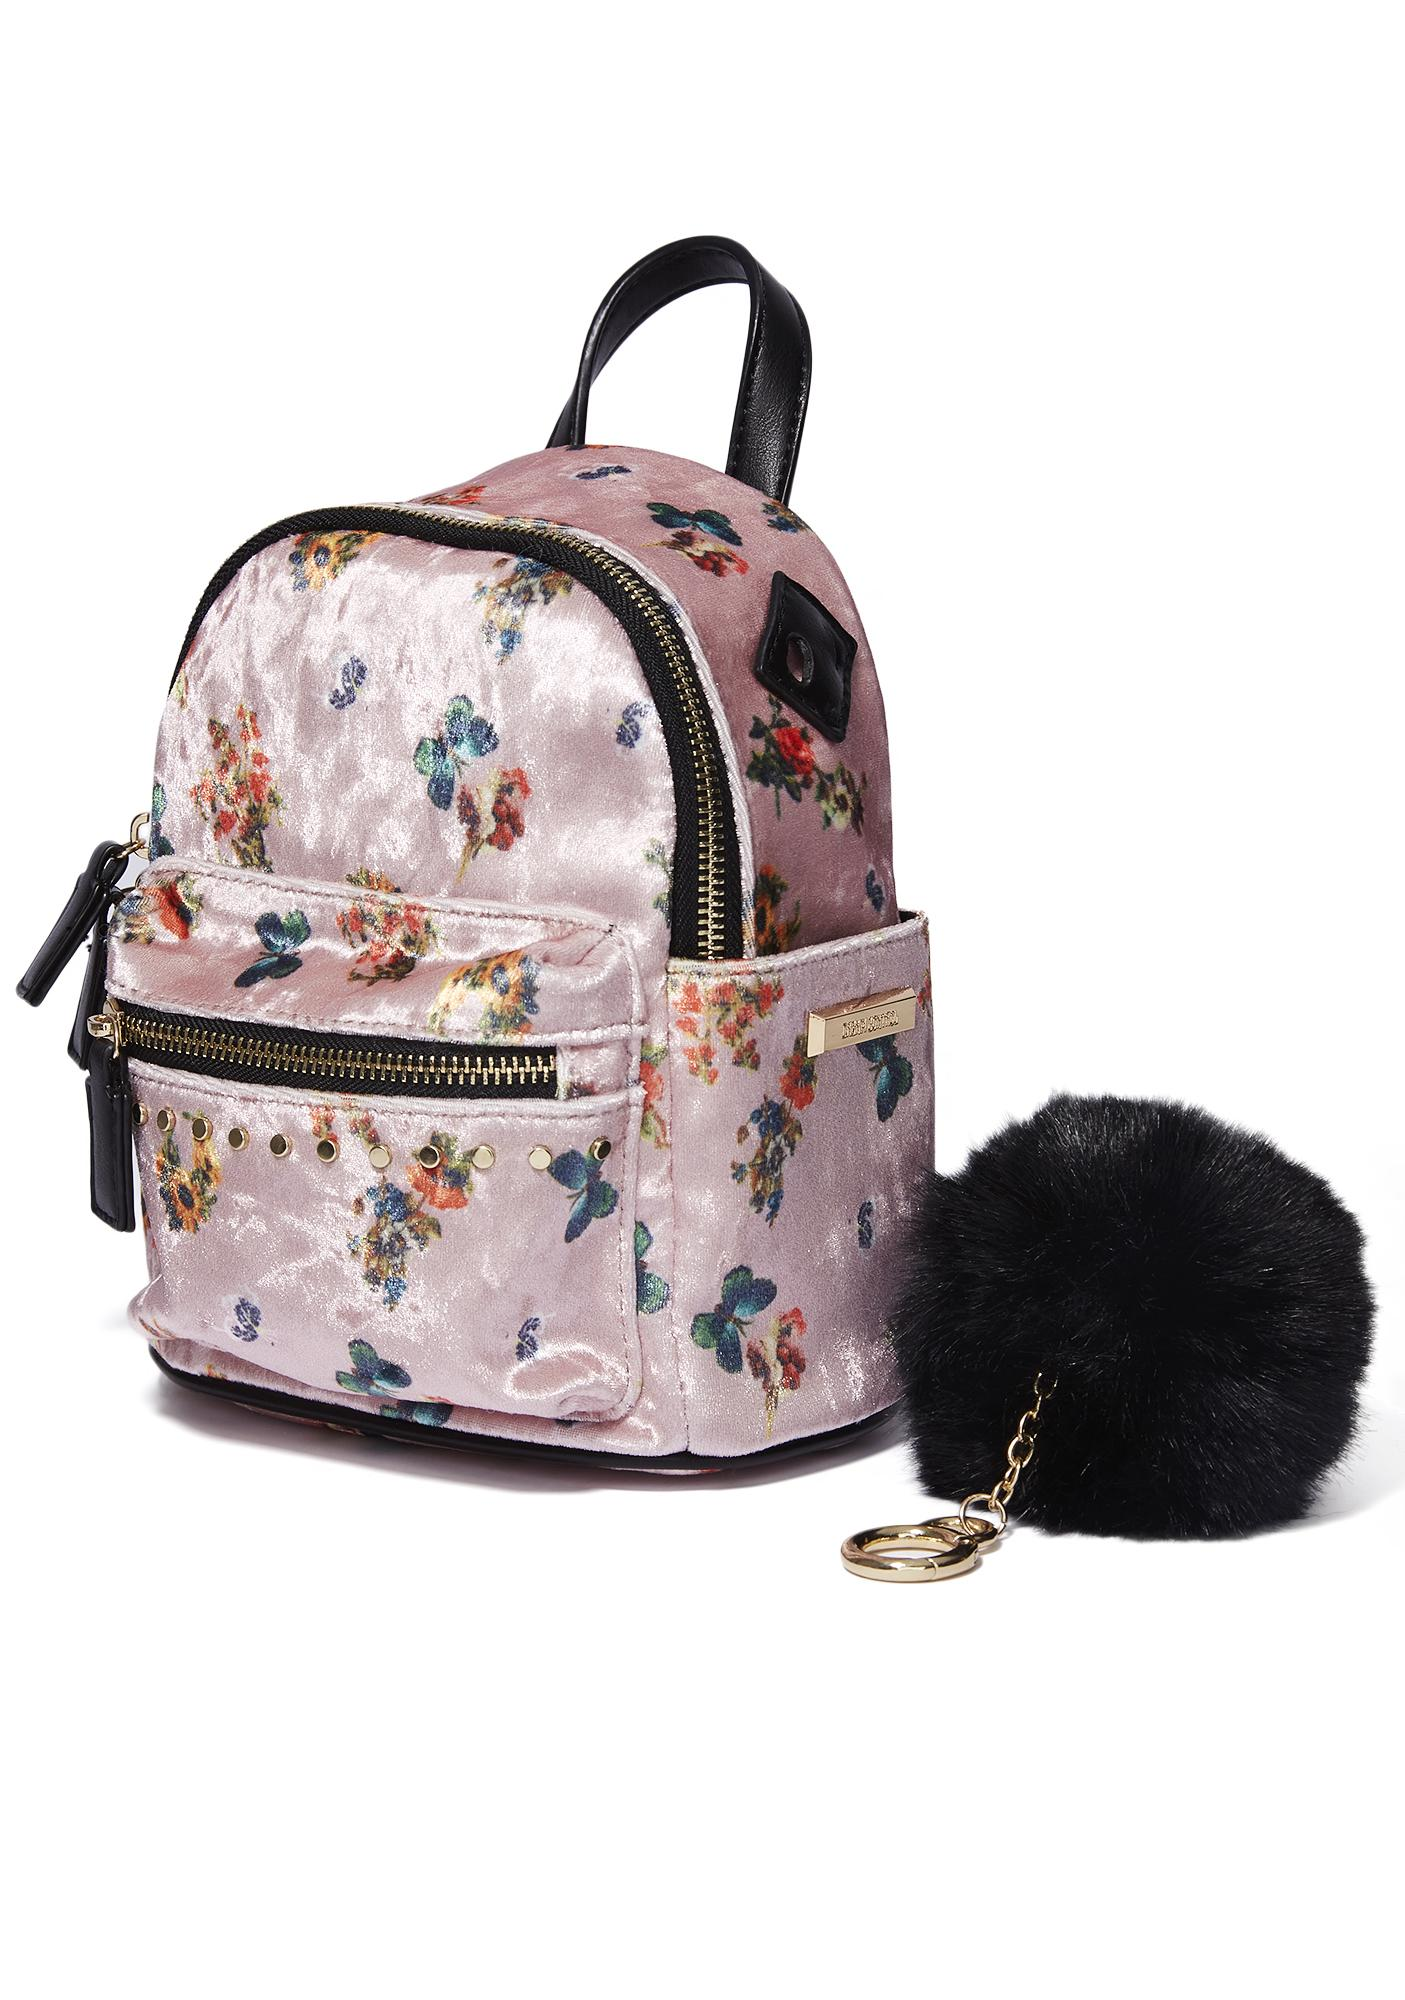 ... Dani Floral Mini Backpack e3edfa4635c0d